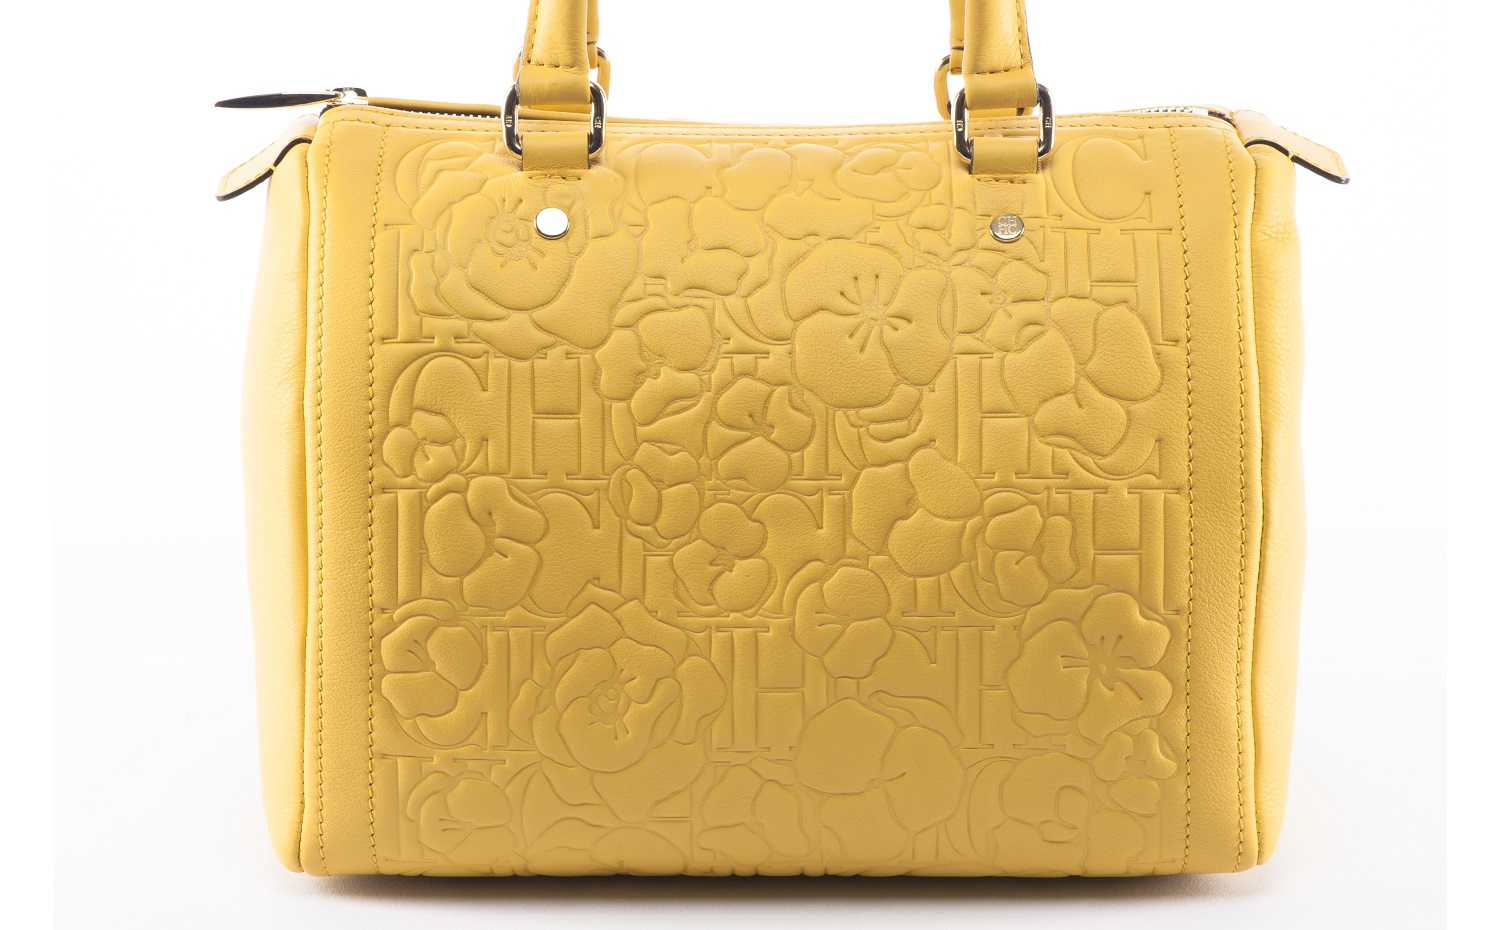 CH Carolina Herrera - Bouquet Andy Bag Warna Kuning